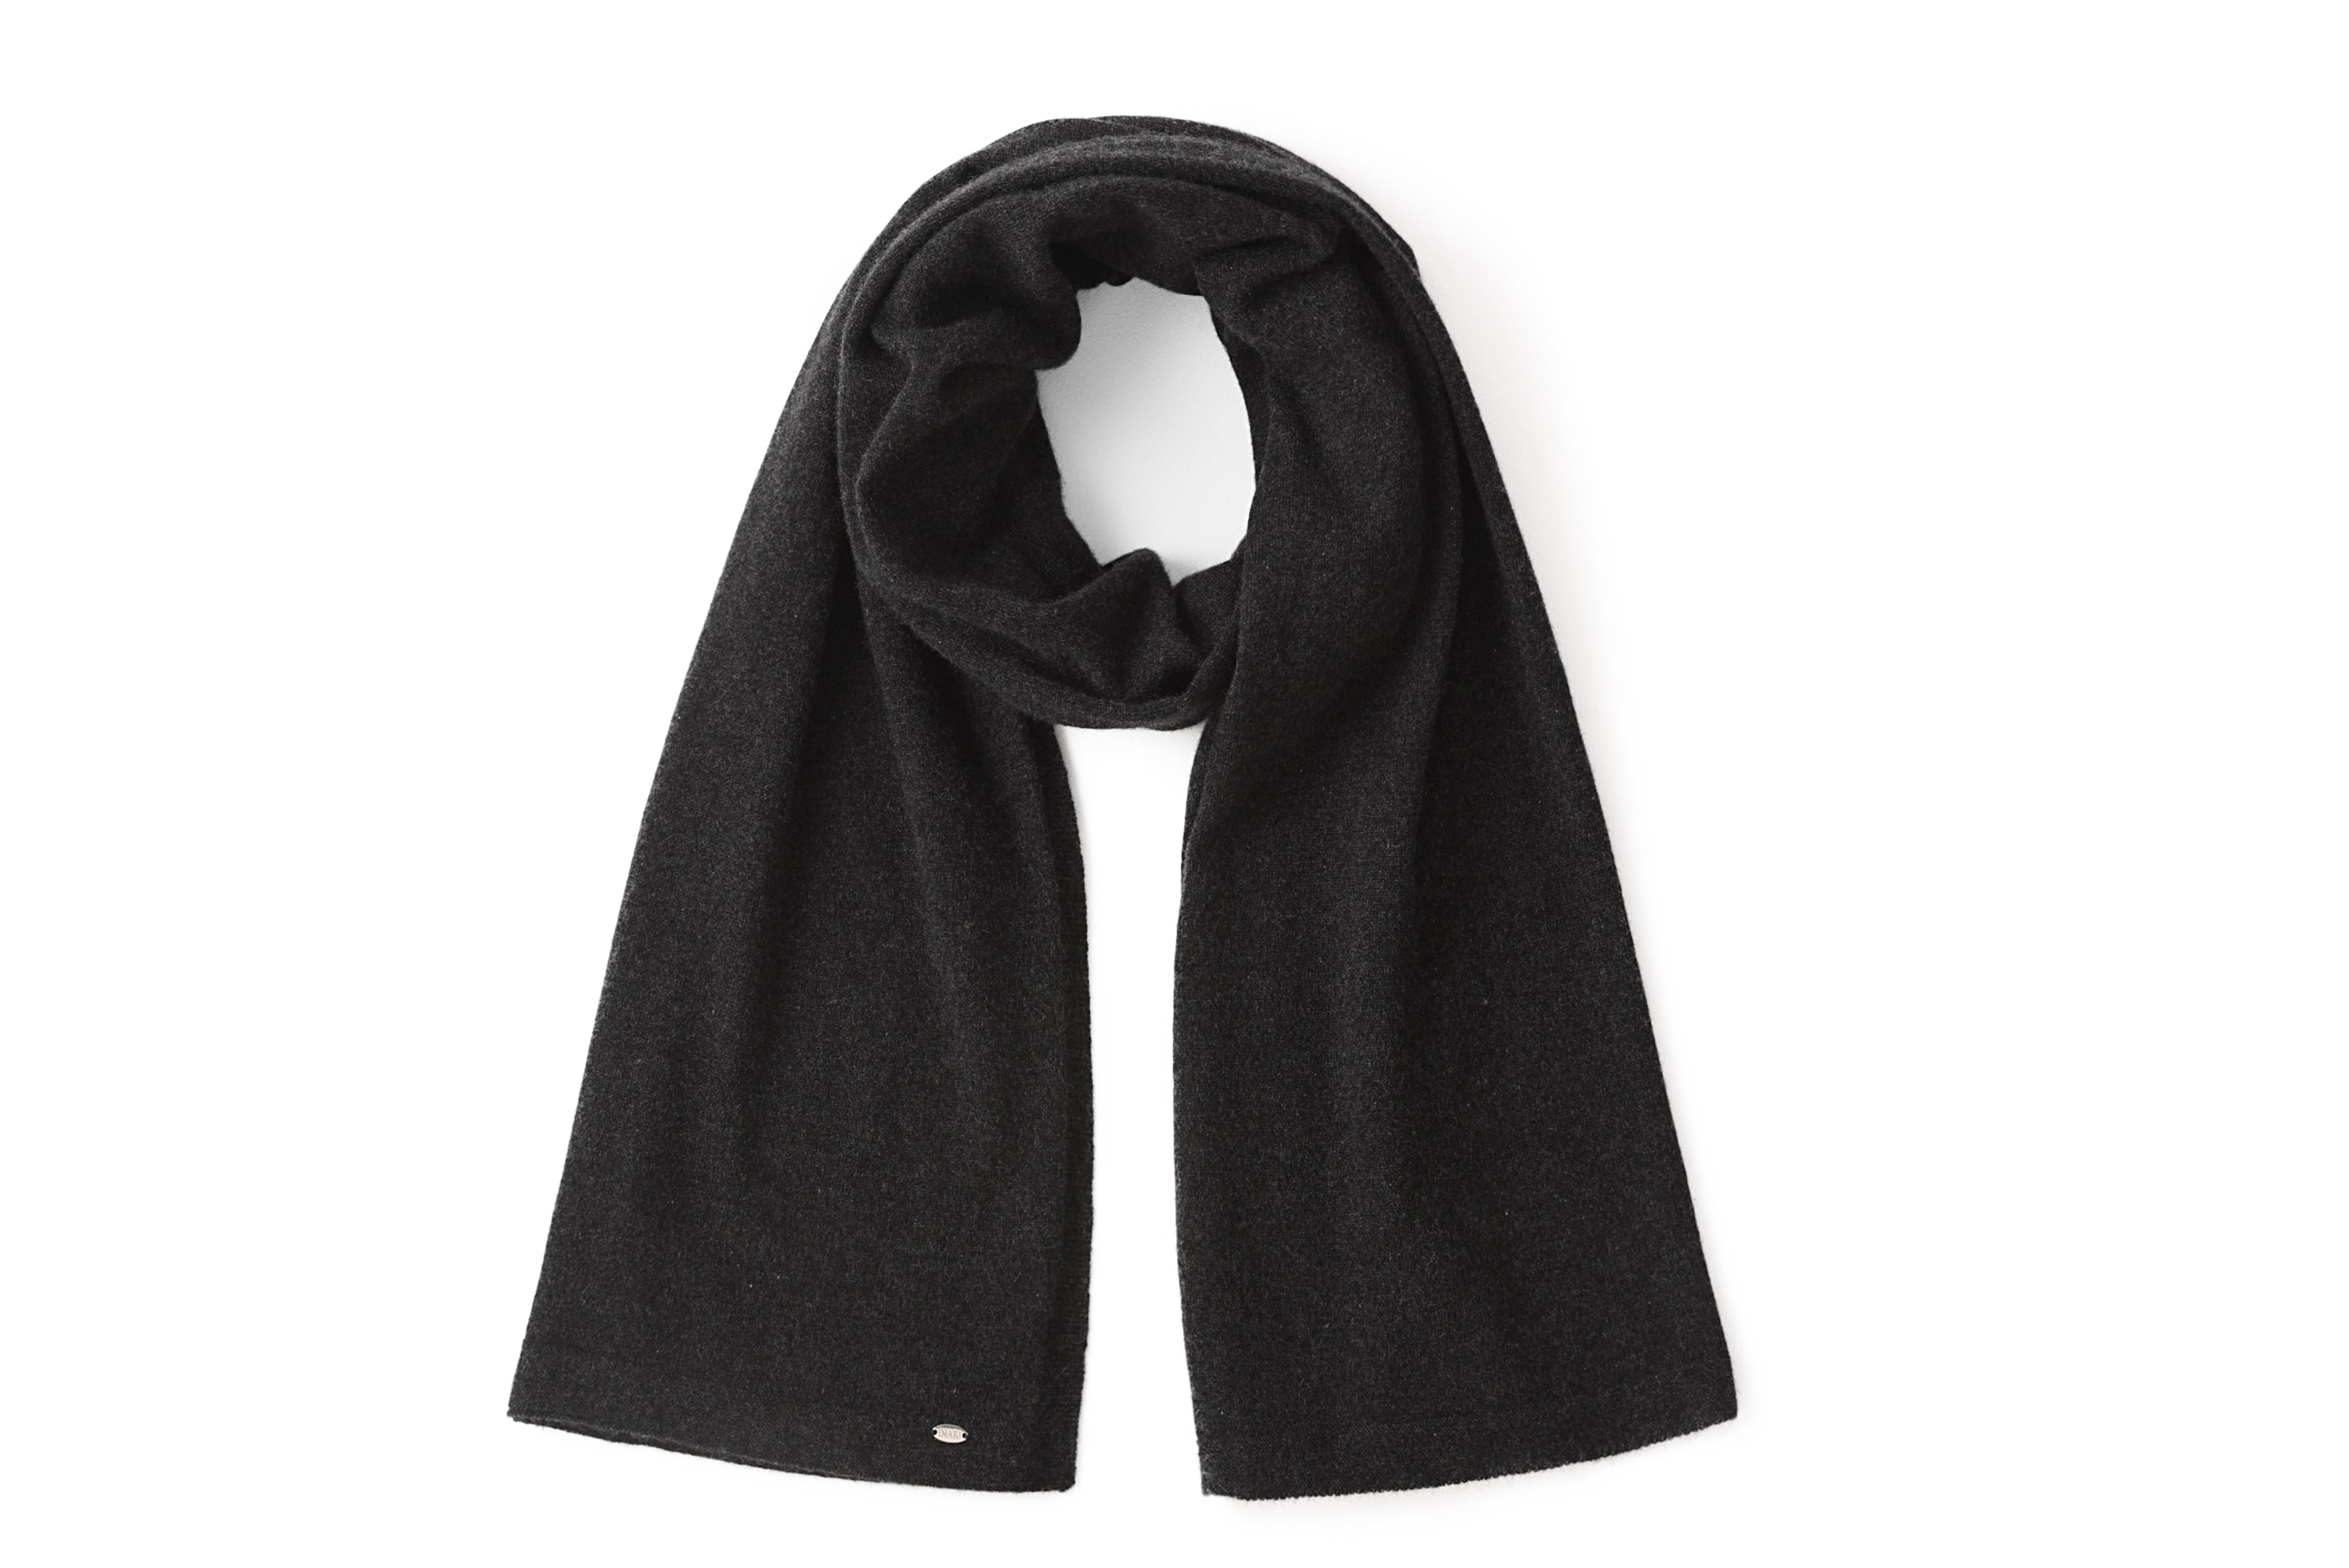 Inari Women's black melnage cashmere scarf / shawl - 100% high-quality cashmere